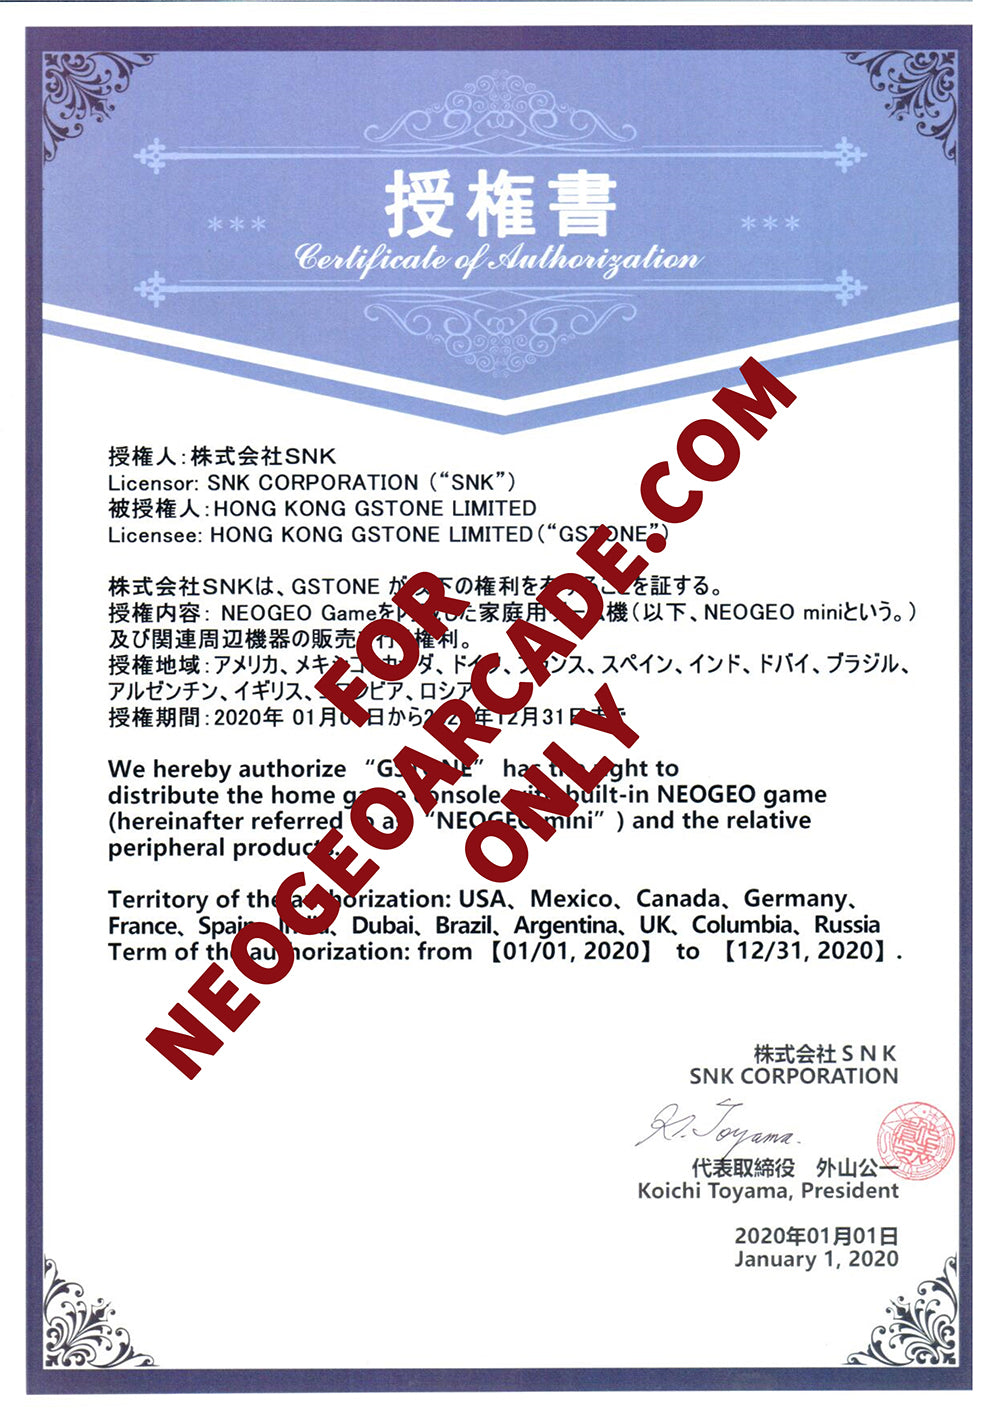 SNK Authorization & Certifications Details 1